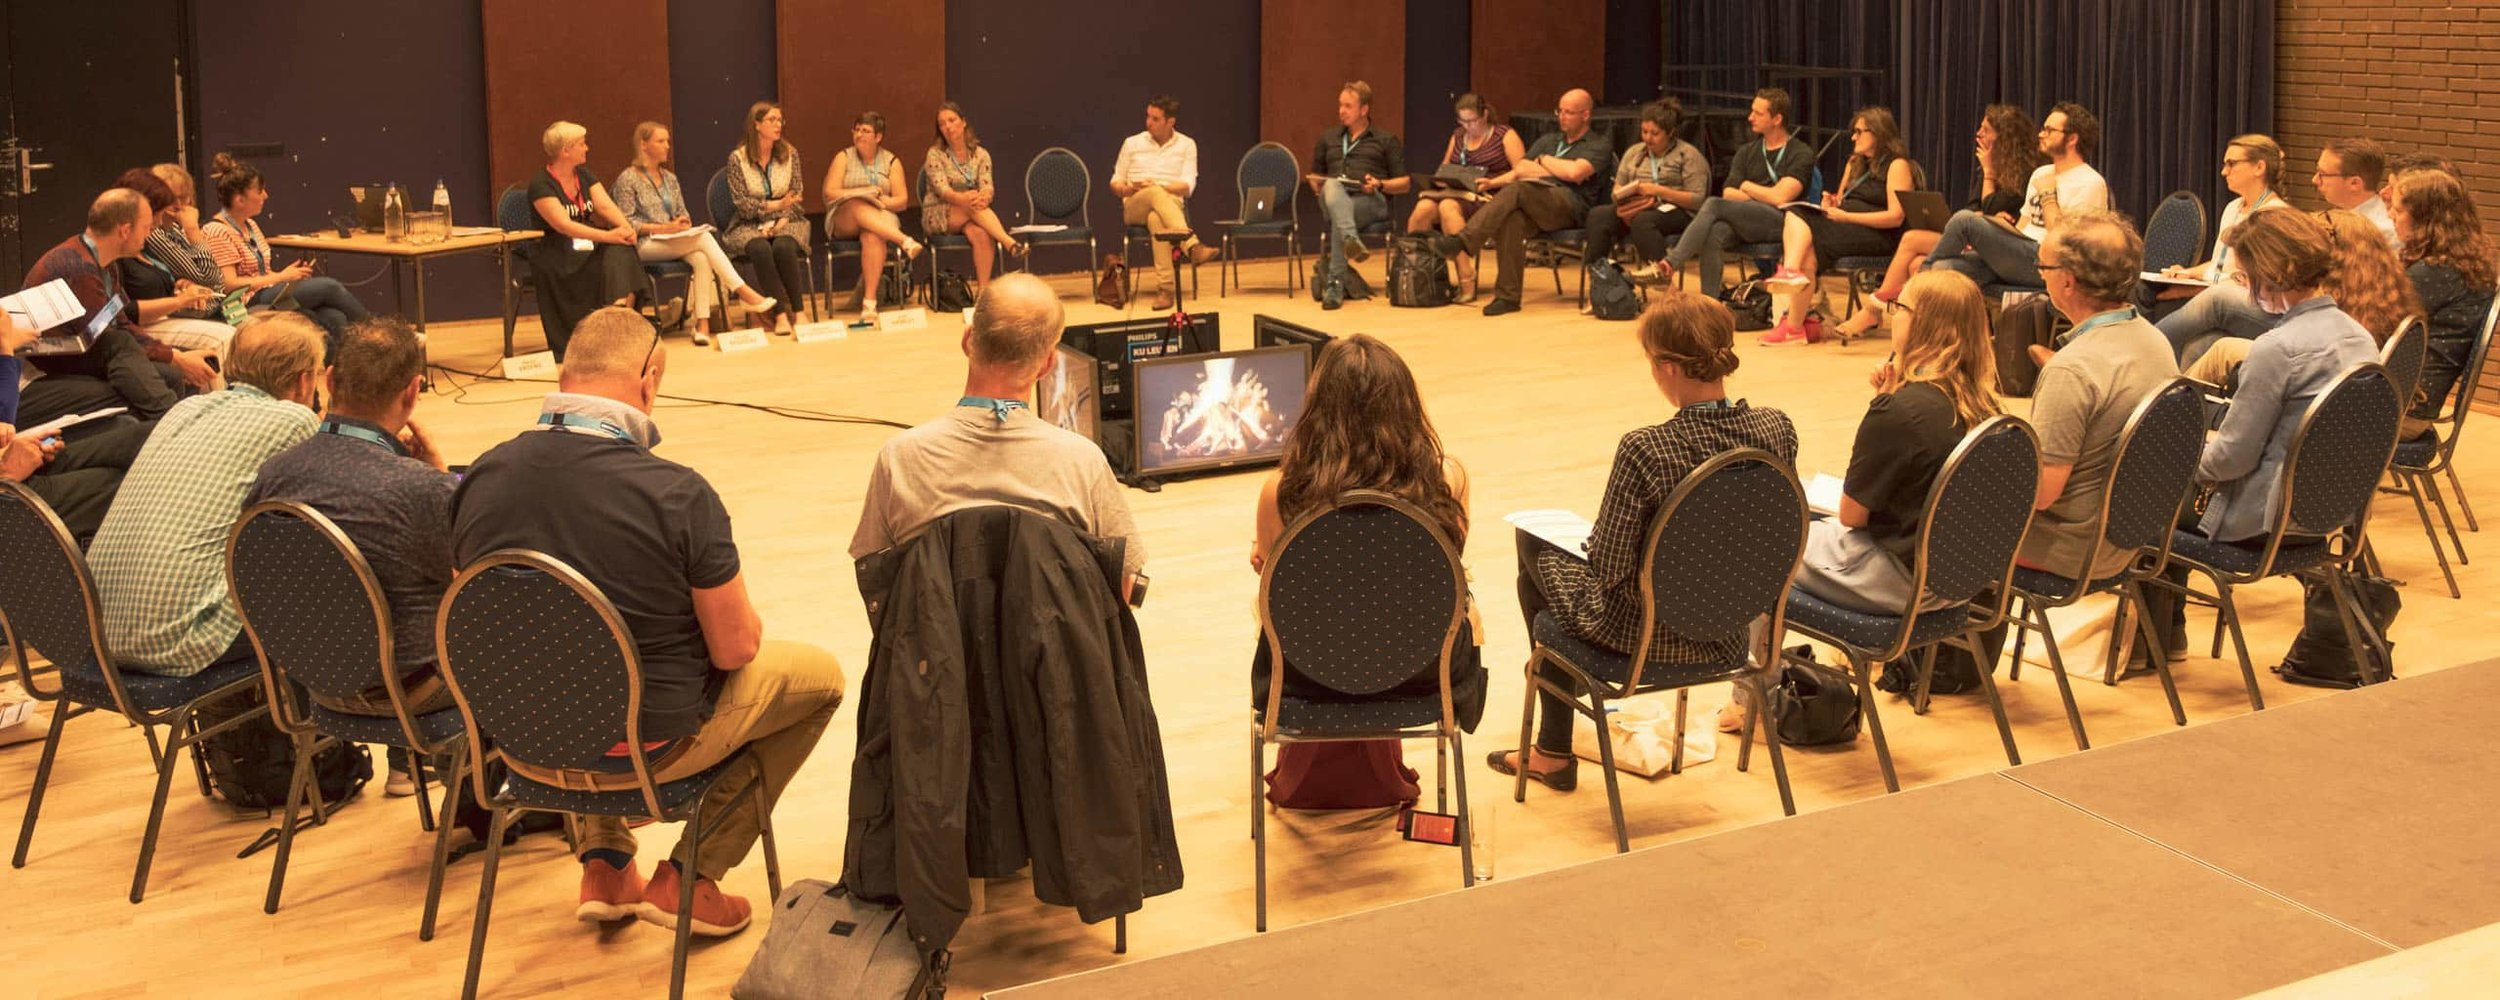 avitor-crowdbeamer-foster-peer-to-peer-learning-during-campfire-sessions-3.jpg